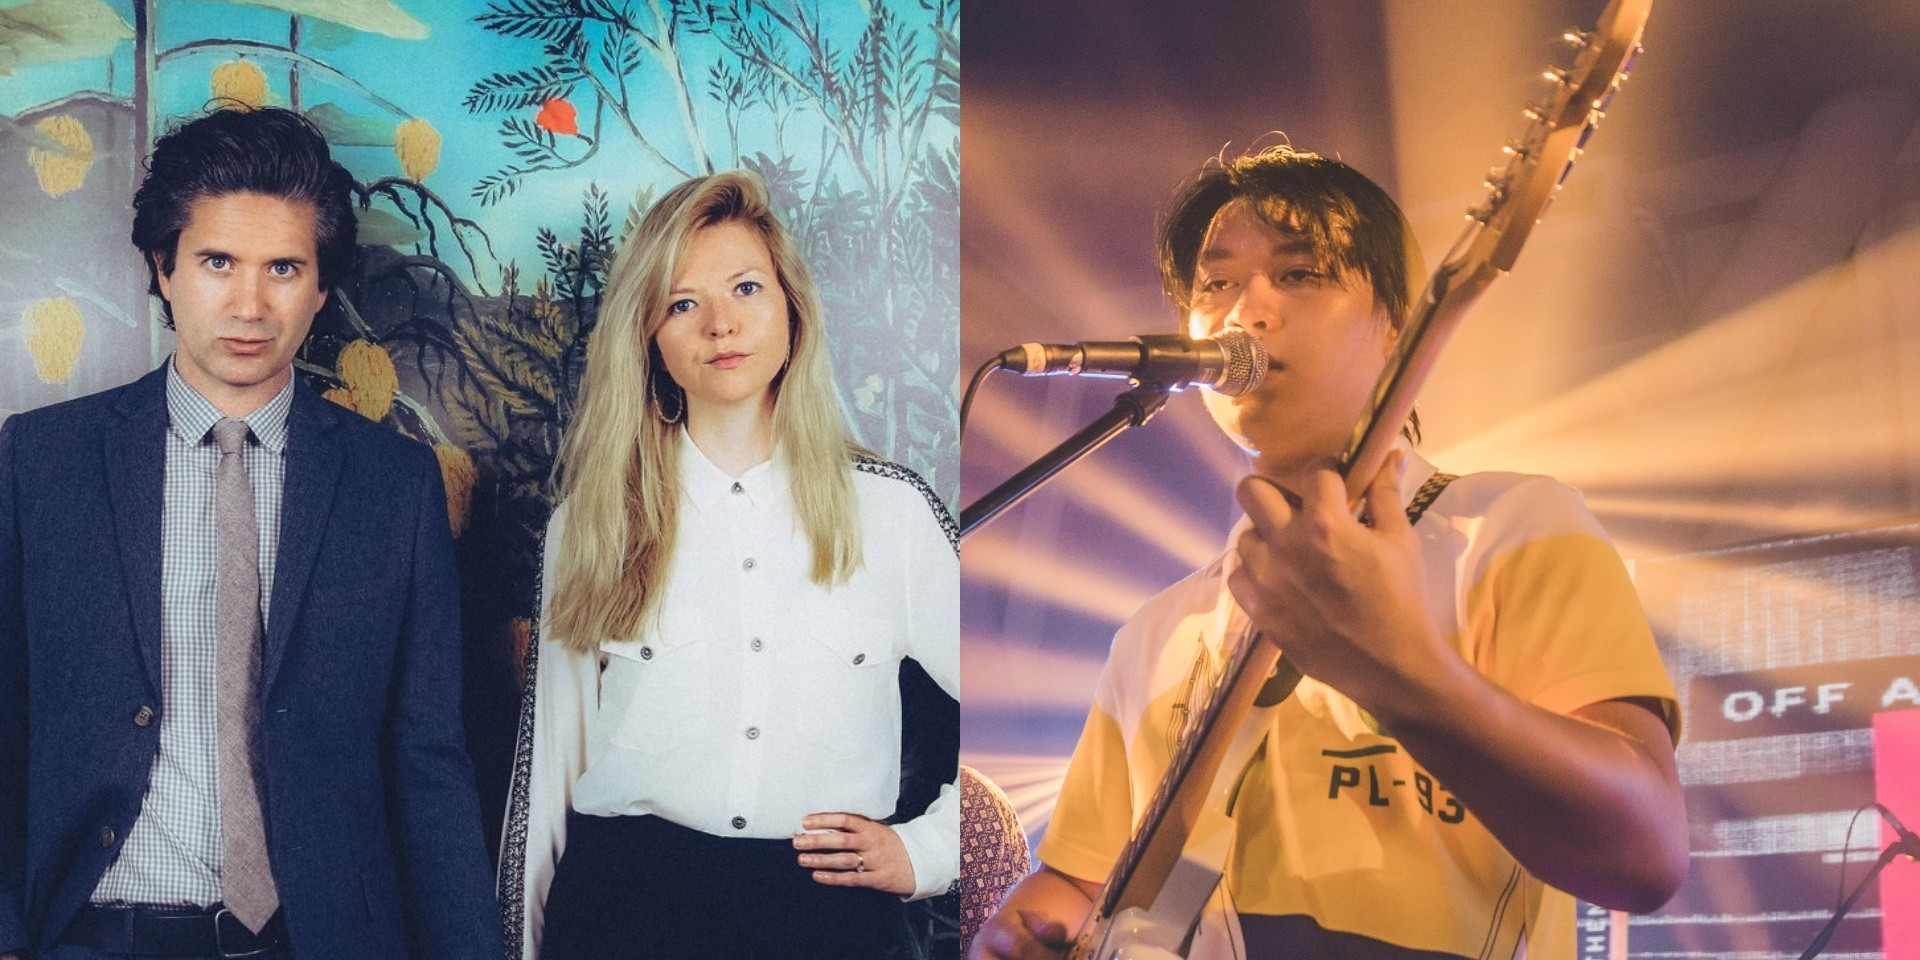 Still Corners and Mellow Fellow to perform in Singapore